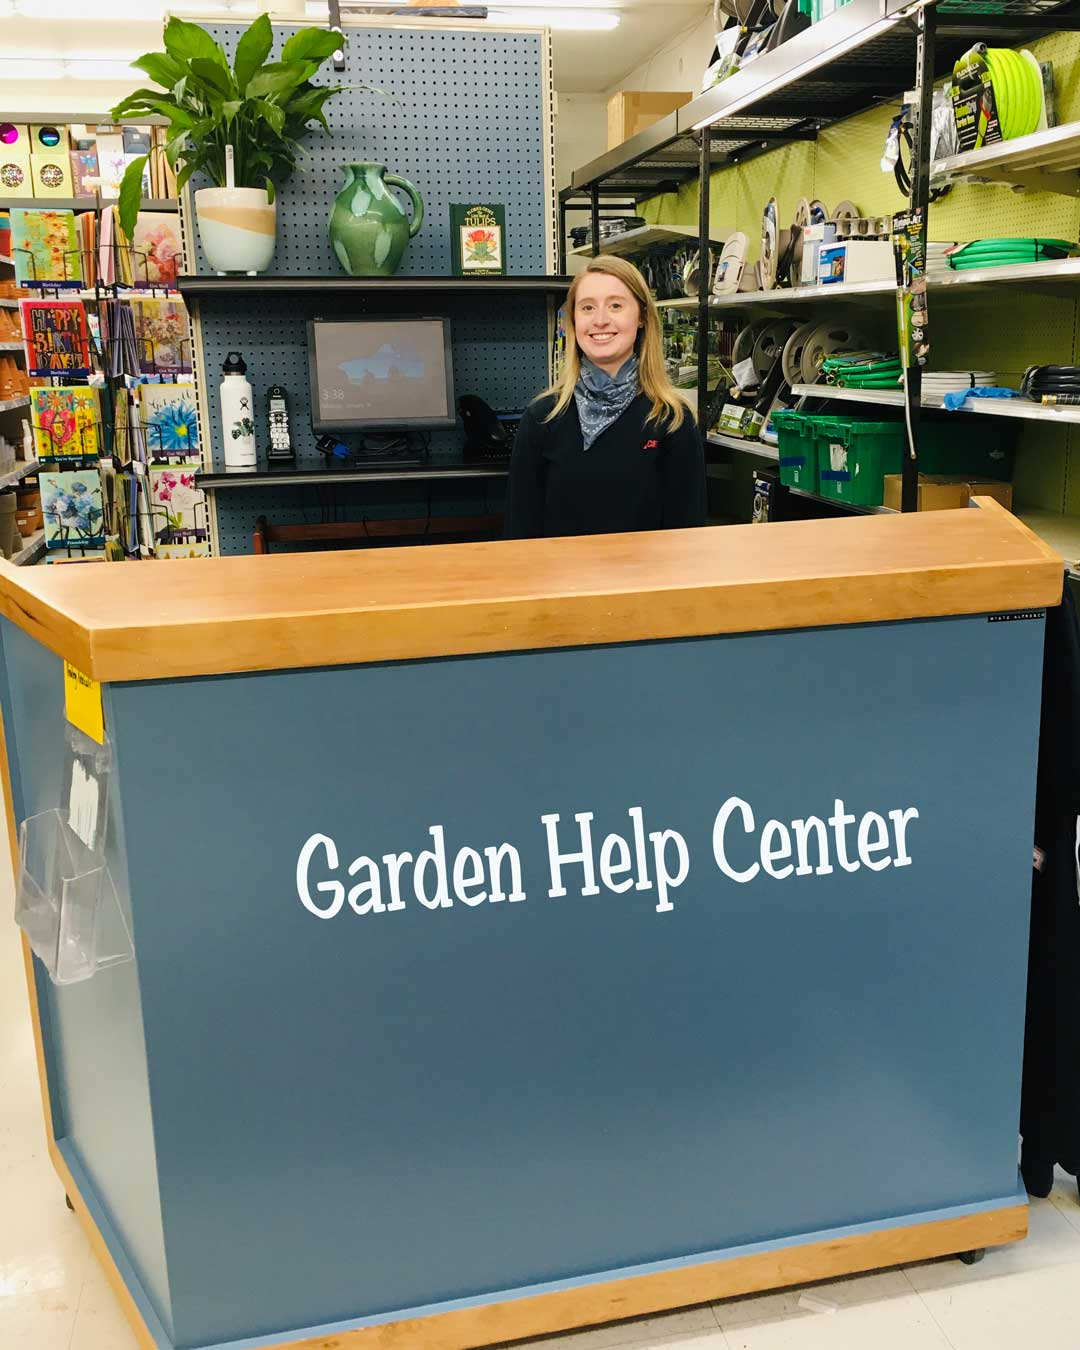 Garden help center now open